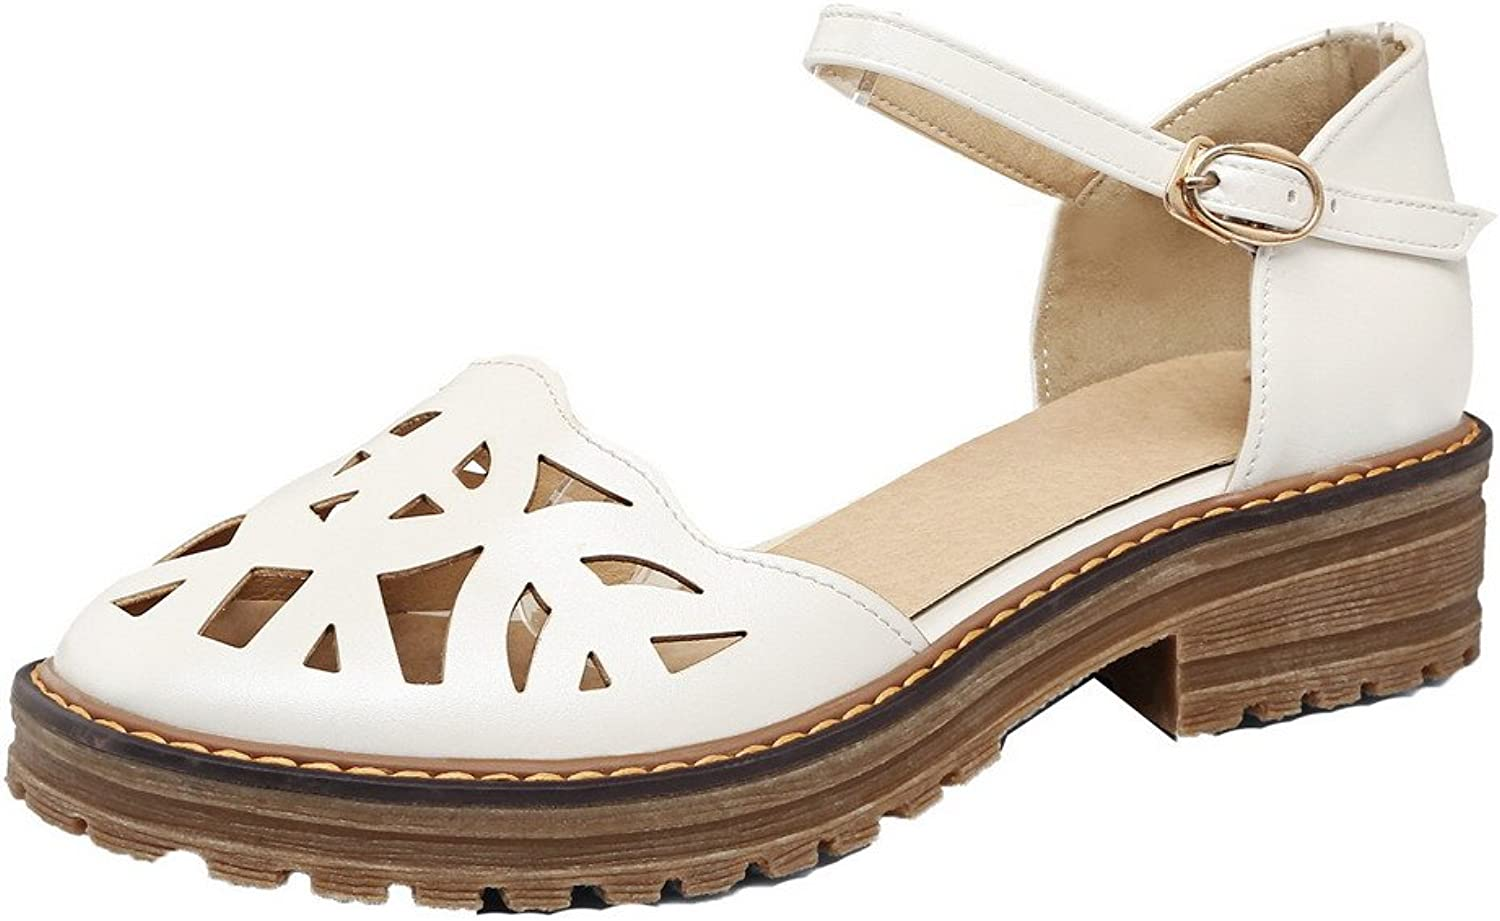 WeiPoot Women's PU Buckle Round-Toe Low-Heels Solid Sandals, EGHLH005590